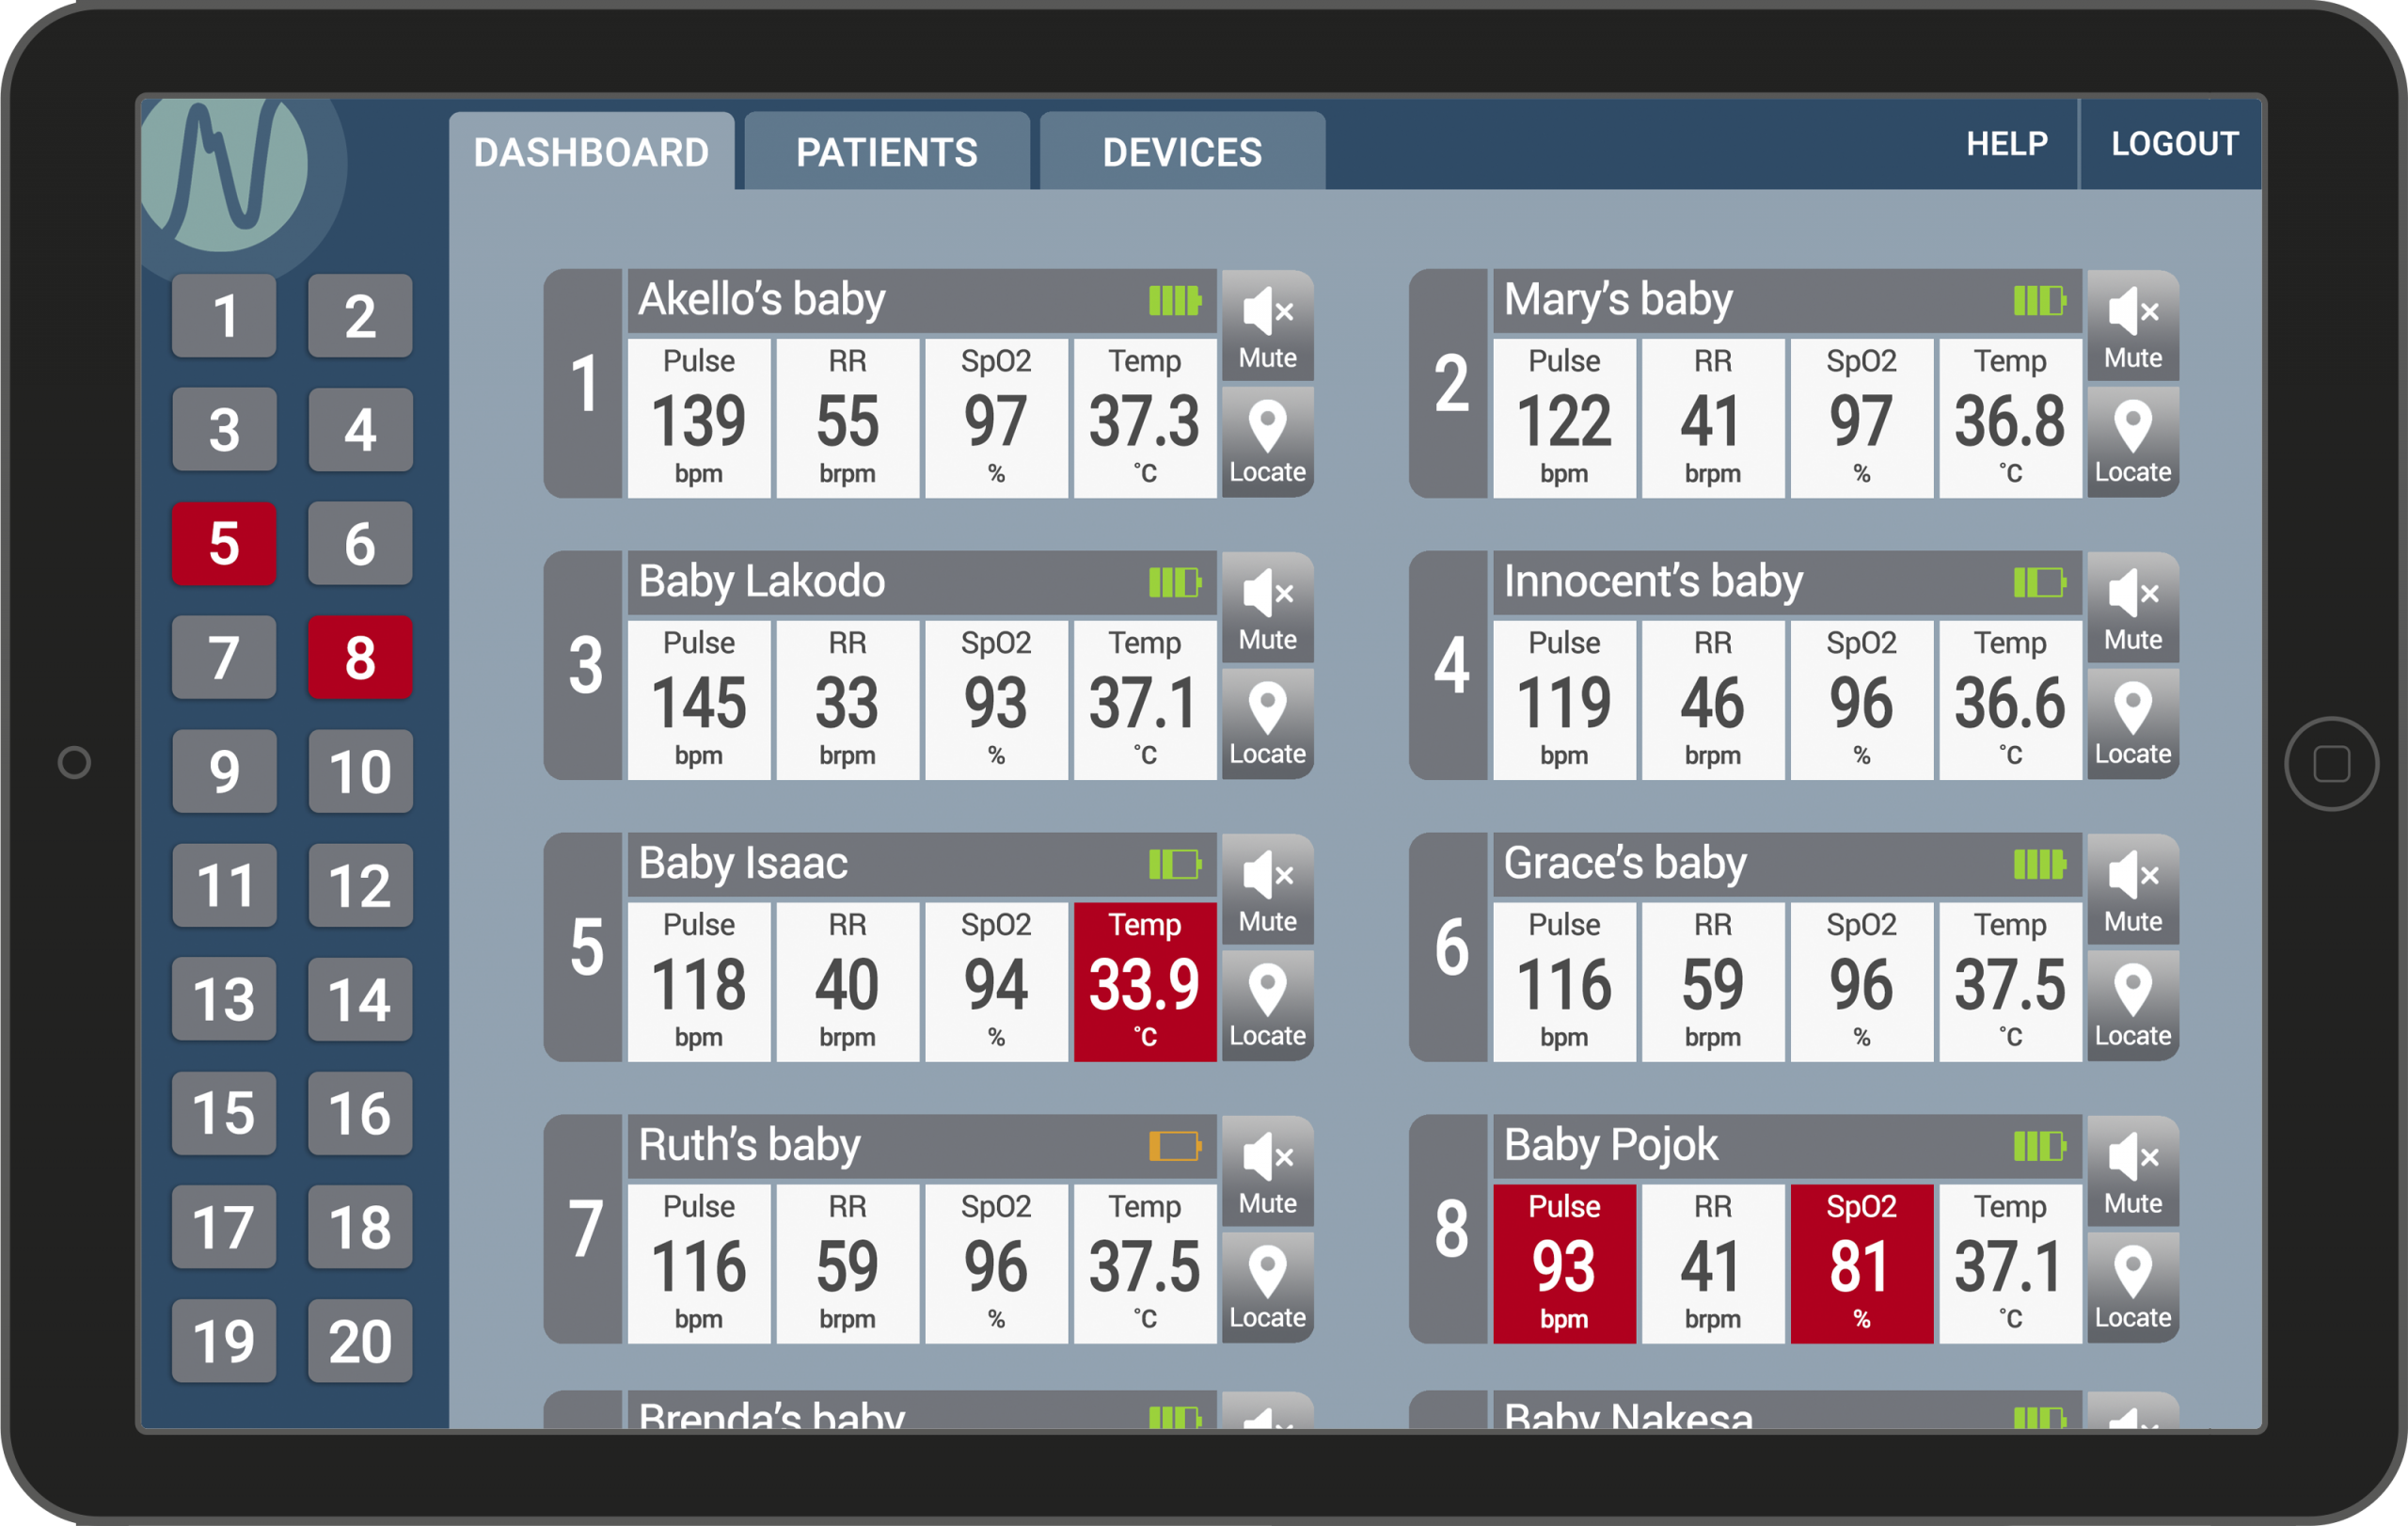 Healthcare workers can monitor vital signs through Neopenda's dashboard